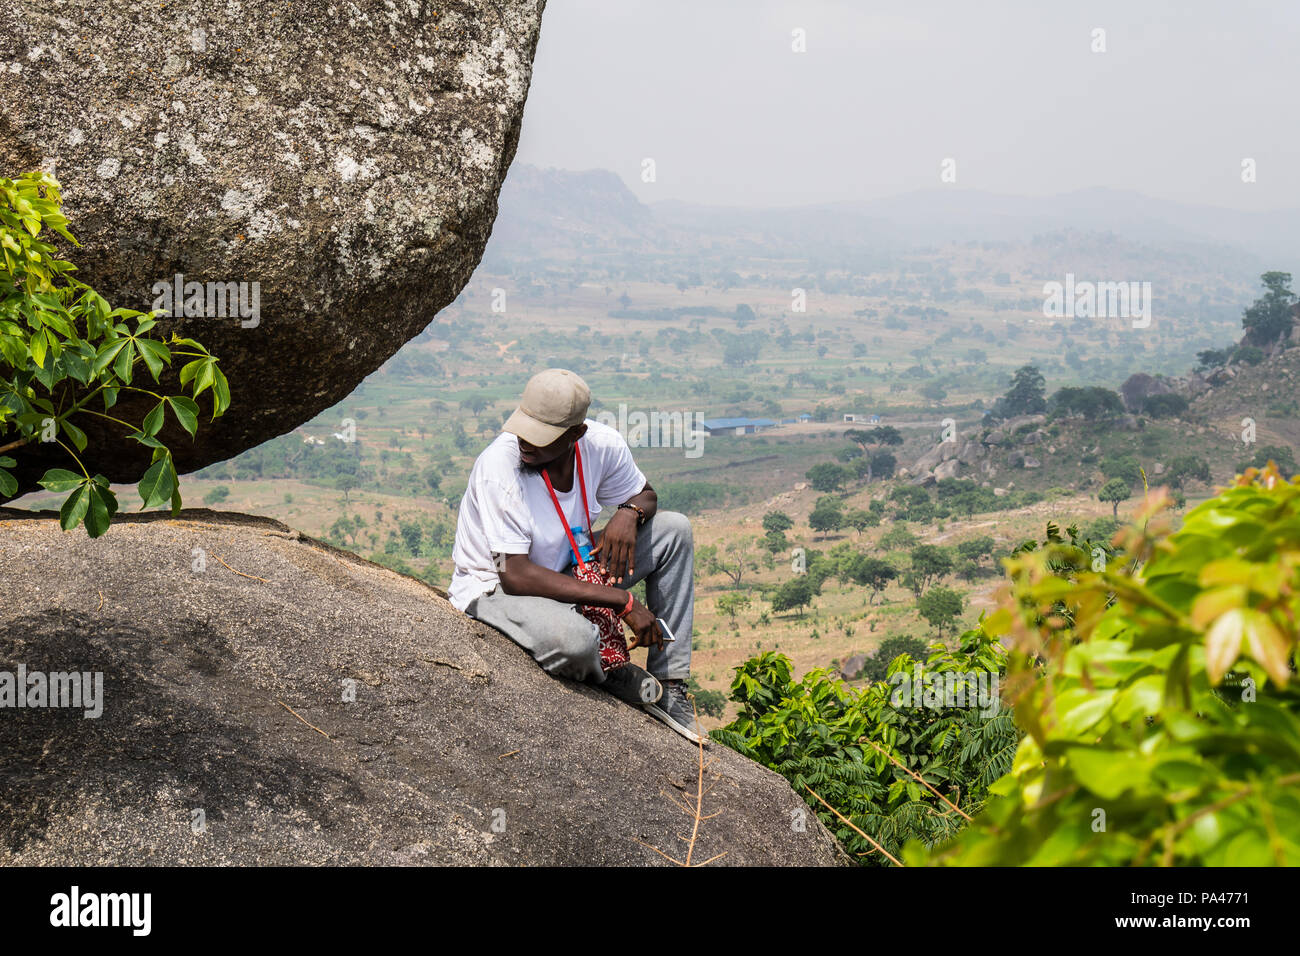 An unknown young man reminiscing on the top of a hill overlooking a landscape. - Stock Image